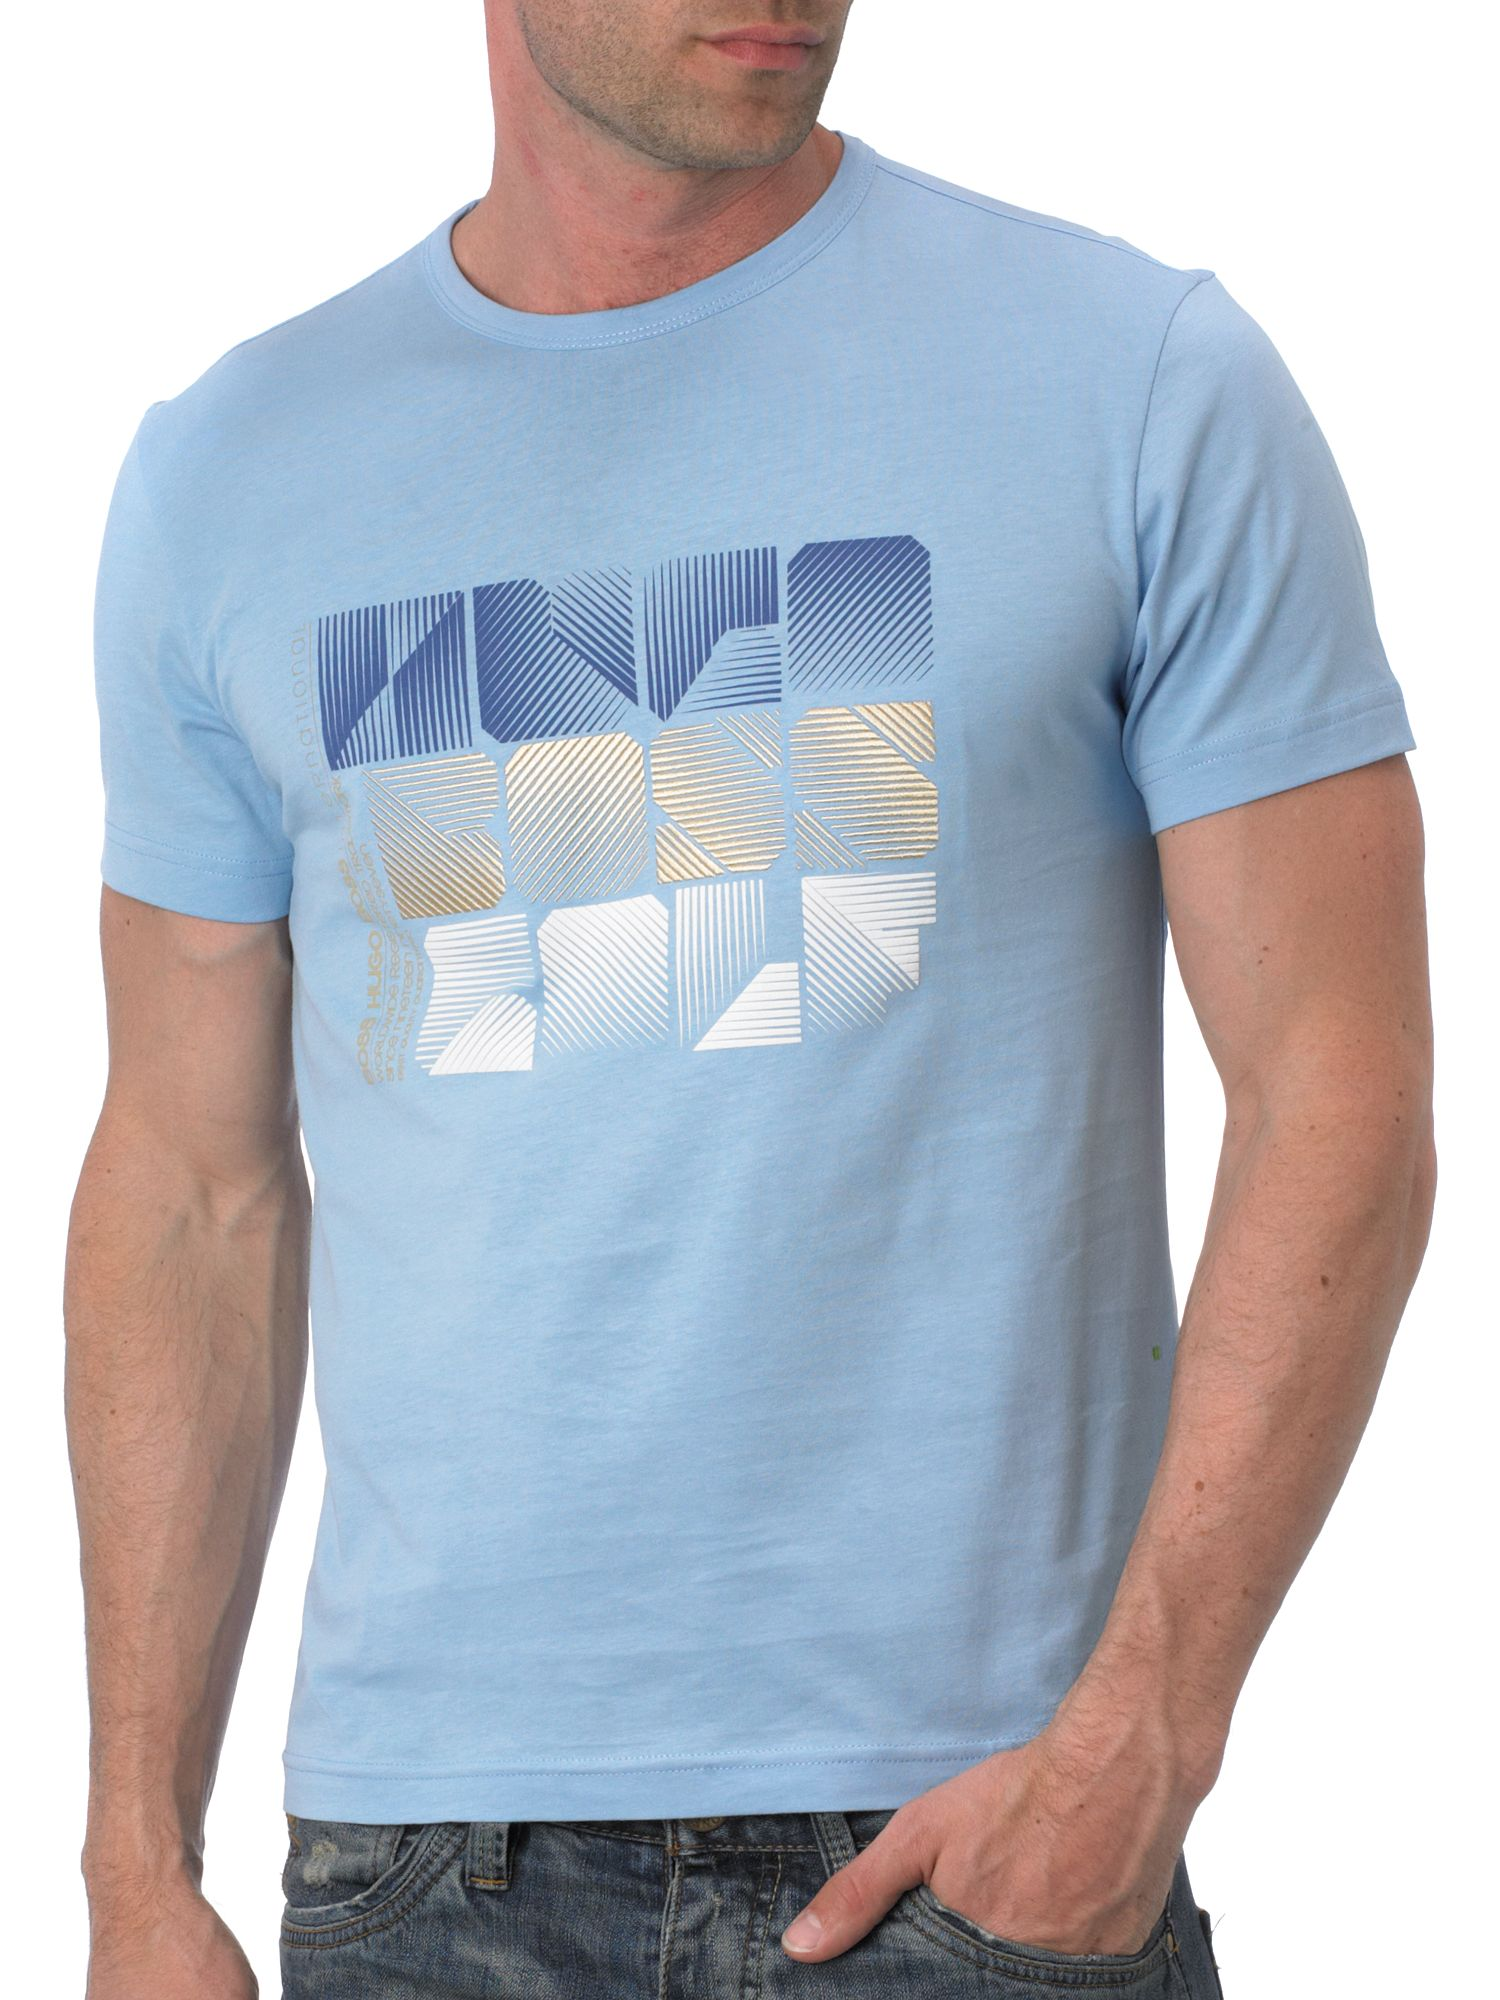 Hugo Boss Square Logo T-Shirt Blue product image